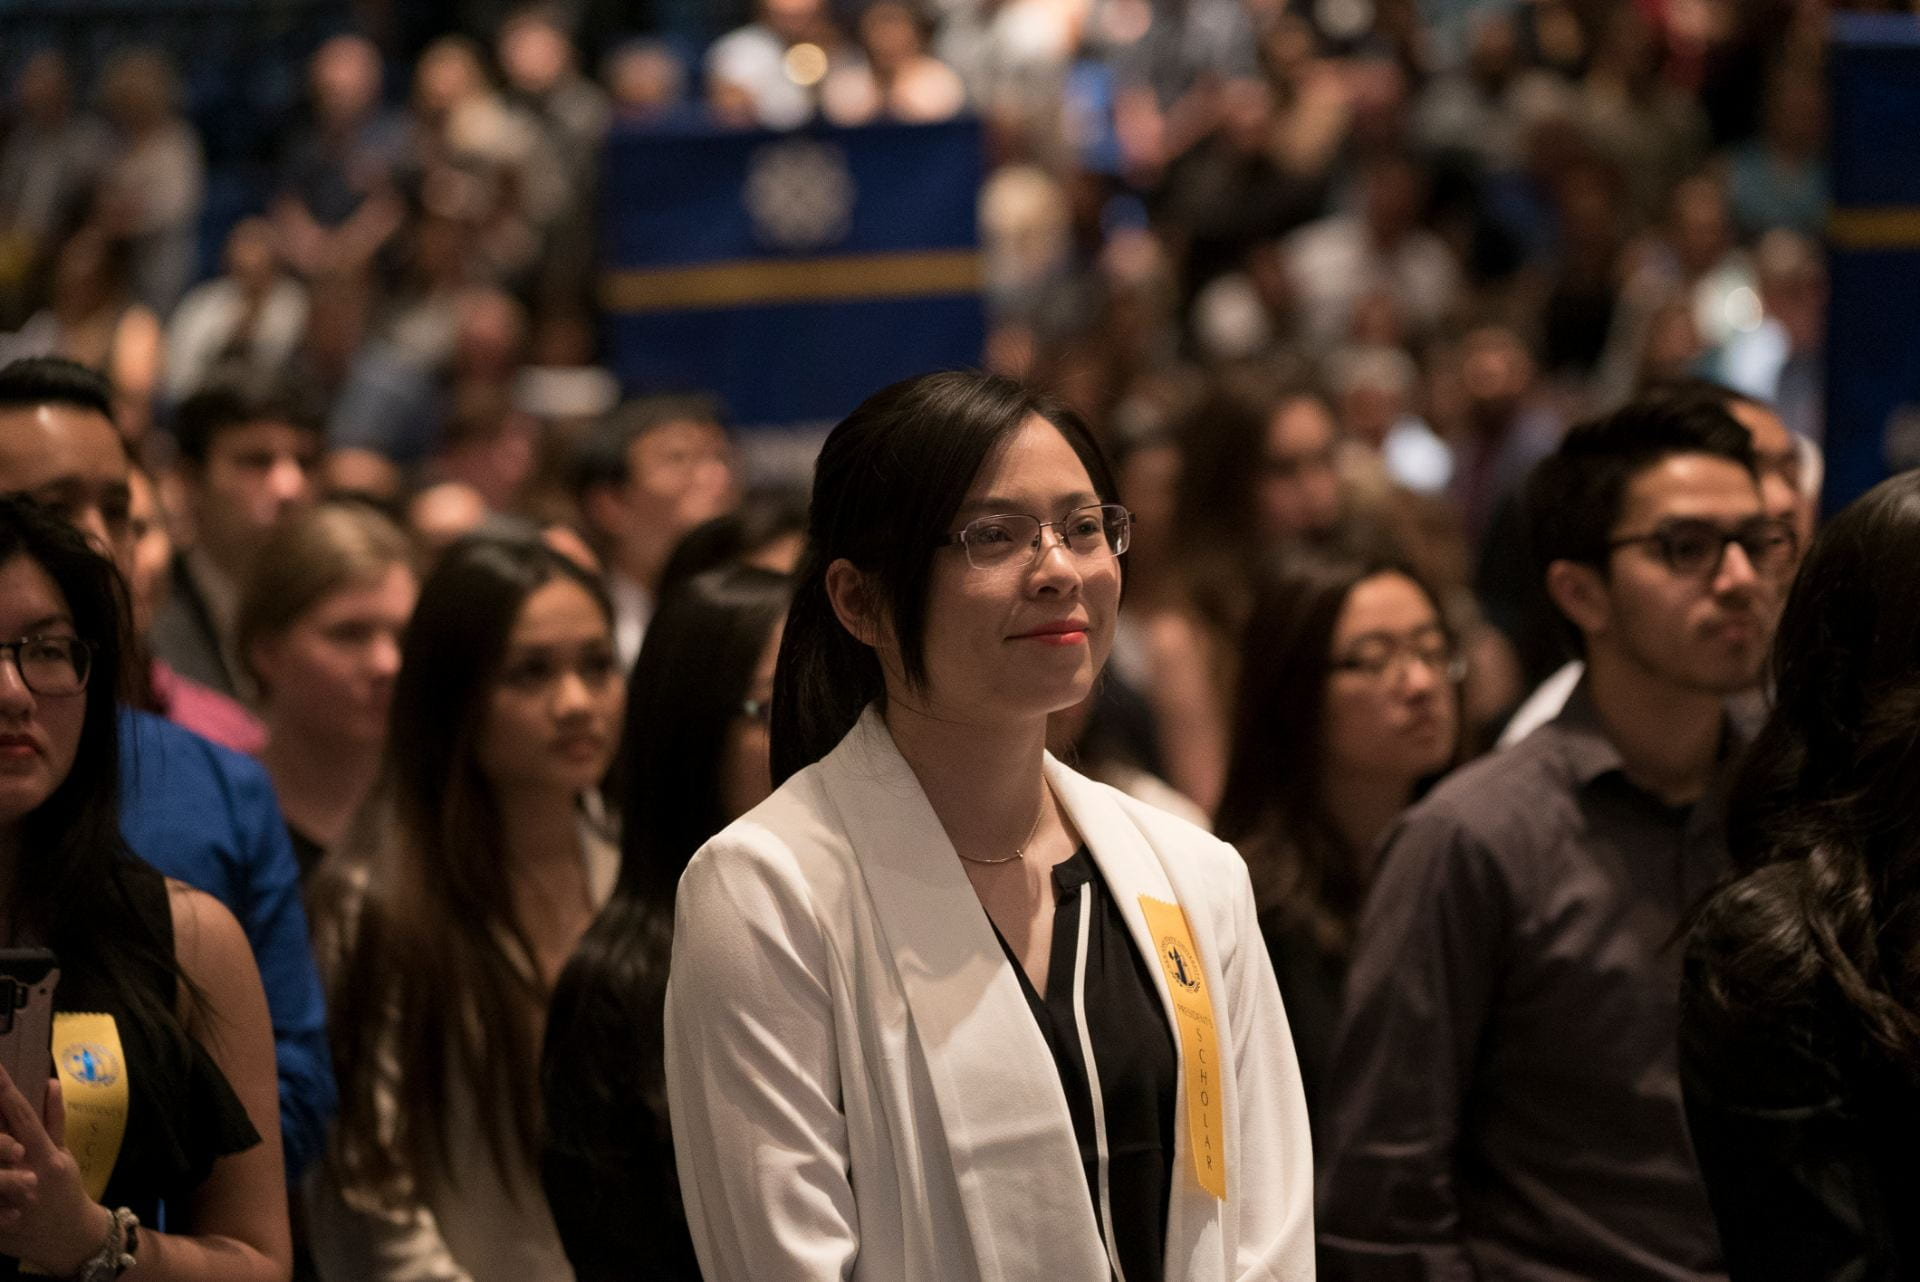 More than 1,300 President's Scholars were recognized at Honors Convocation May 3 in the Event Center at SJSU. Photo by Brandon Chew